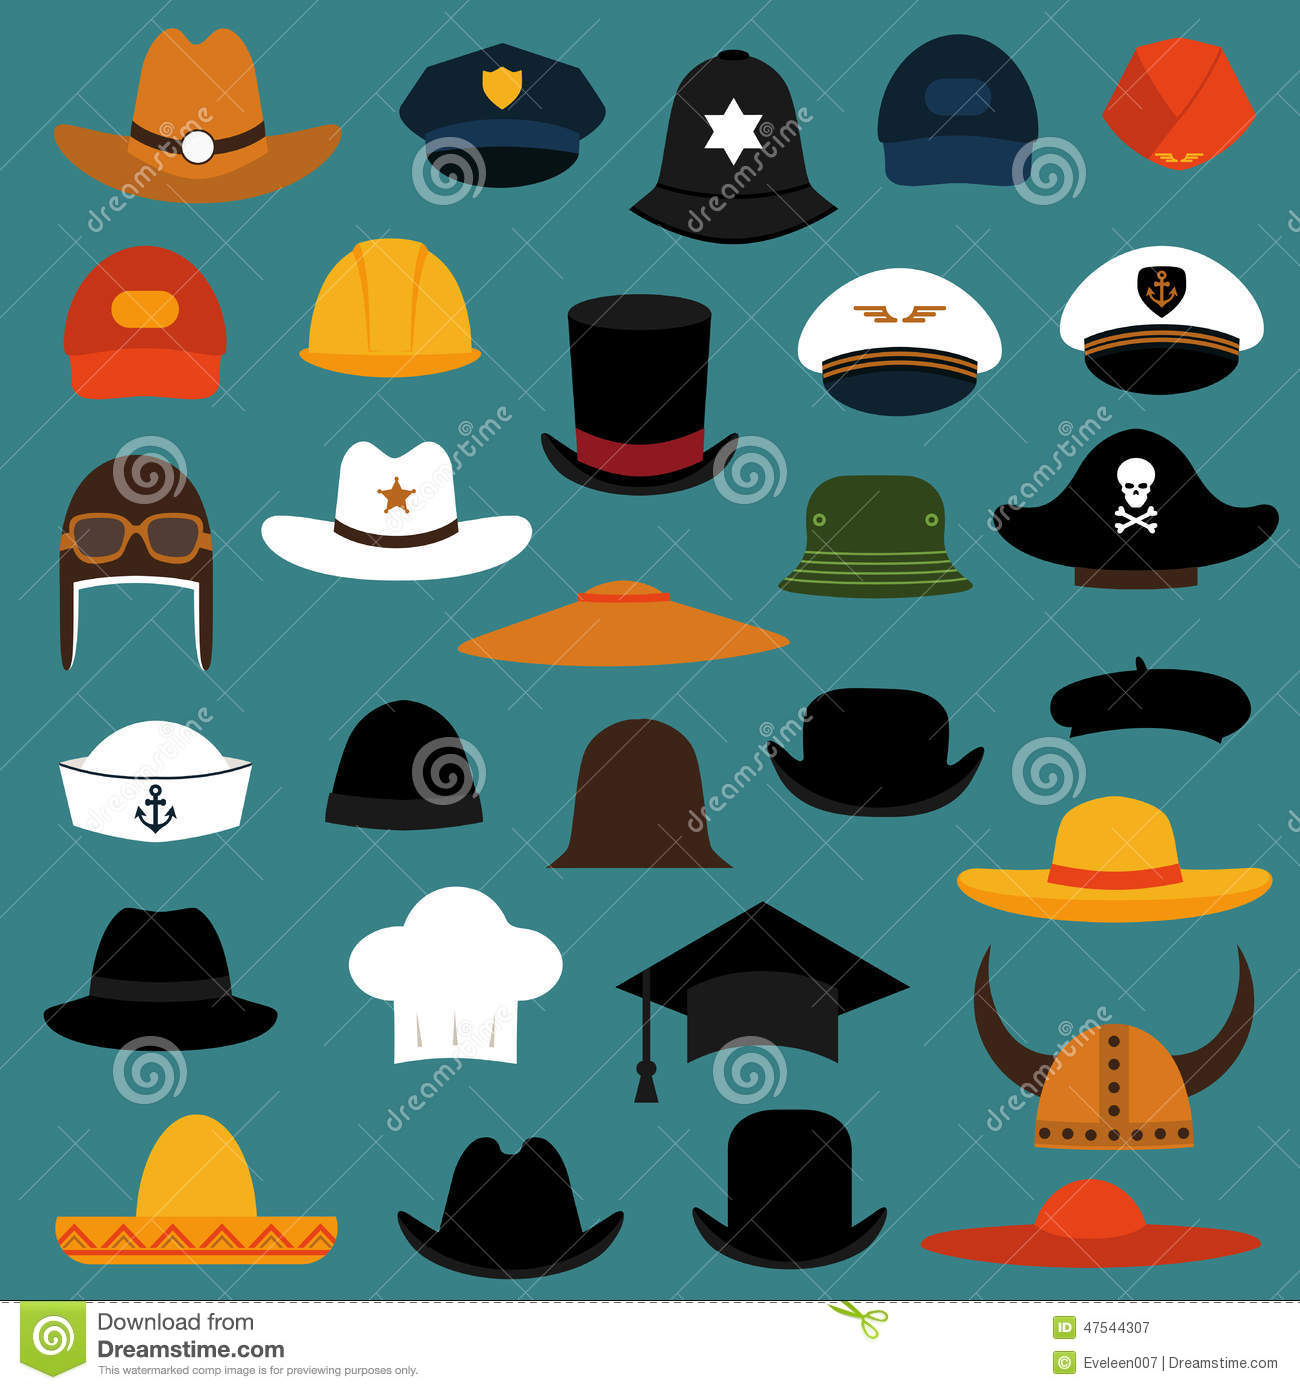 Cap and hat icons